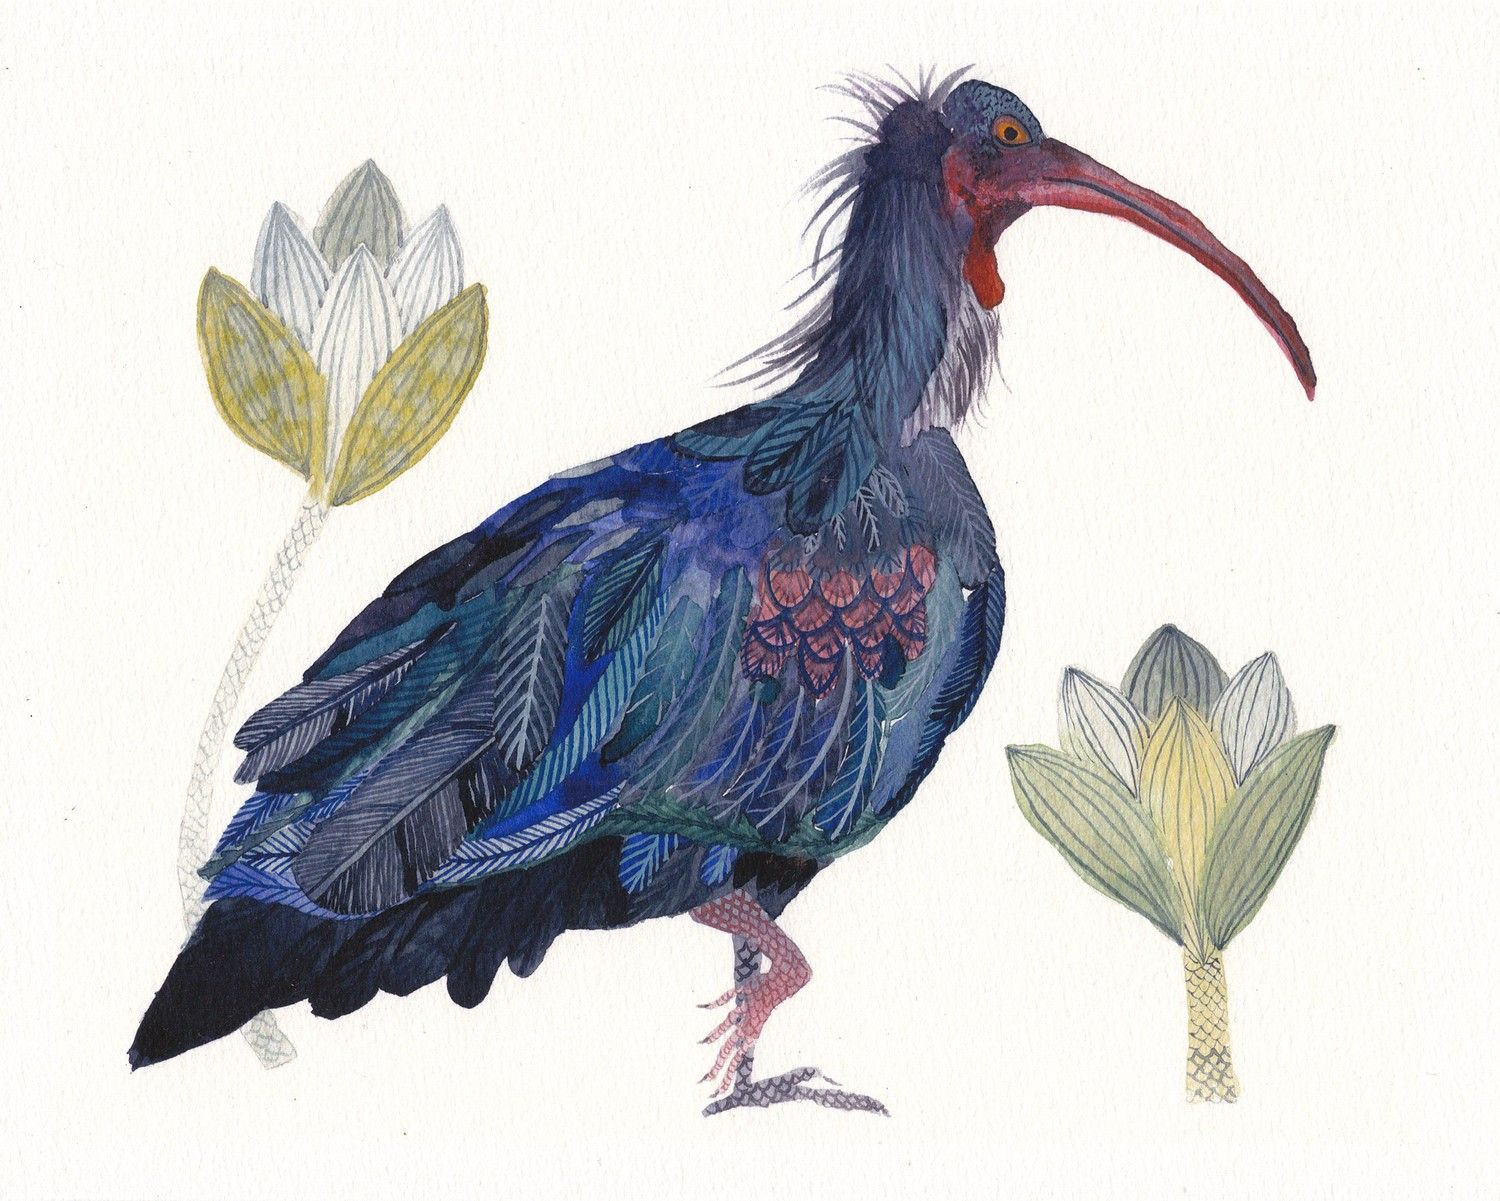 Bald Ibis by Michelle Morin. Watercolour http://www.aqnb.com/2011/01/03/image-five-whales-stacked/